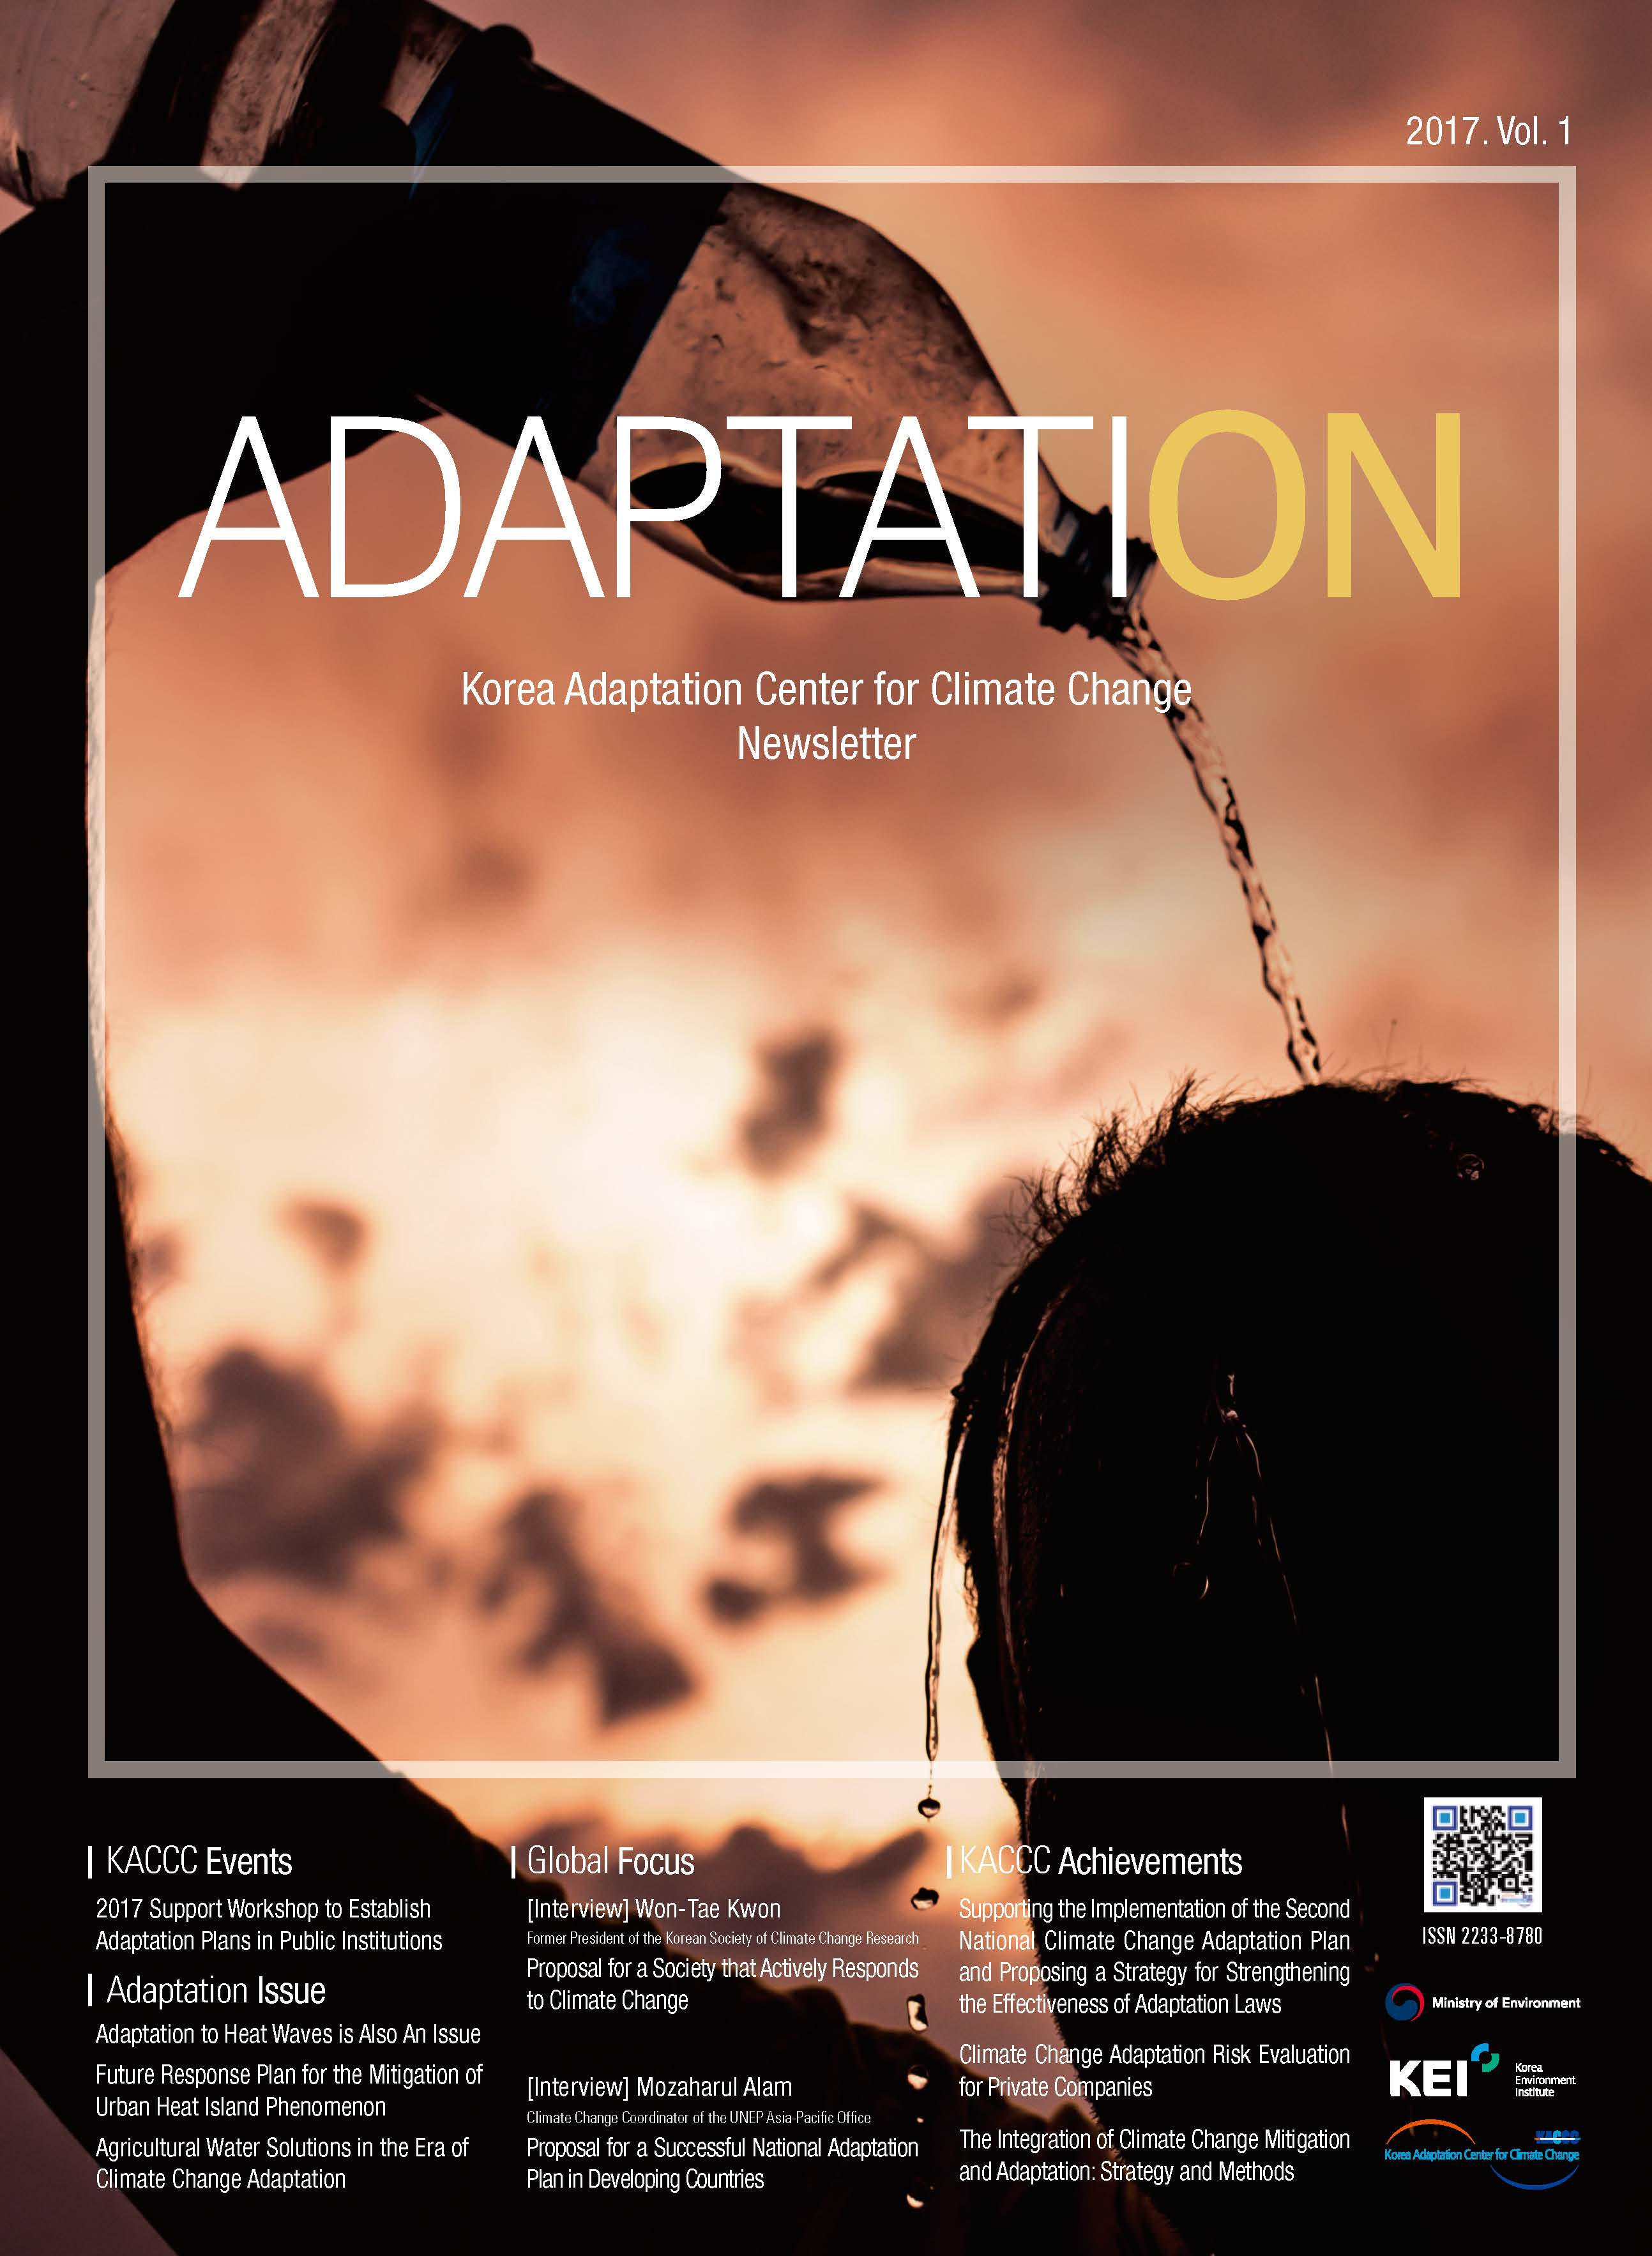 2017. Vol. 1 ADAPTATION Korea Adaptation Center for Climate Change Newsletter KACCC Events 2017 Support Workshop to Establish Adaptation Plans in Public Institutions Adaptation Issue Adaptation to Heat Waves is Also An Issue Future Response Plan for the Mitigation of Urban Heat Island Phenomenon Agricultural Water Solutions in the Era of Climate Change Adaptation Global Focus [Interview] Won-Tae Kwon [Interview] Mozaharul Alam Former President of the Korean Society of Climate Change Research Proposal for a Society that Actively Responds to Climate Change [Interview] Mozaharul Alam Climate Change Coordinator of the UNEP Asia-Pacific Office Proposal for a Successful National Adaptation Plan in Developing Countries KACCC Achievements Supporting the Implementation of the Second National Climate Change Adaptation Plan and Proposing a Strategy for Strengthening the Effectiveness of Adaptation Laws Climate Change Adaptation Risk Evaluation for Private Companies The Integration of Climate Change Mitigation and Adaptation: Strategy and Methods ISSN 2233-8780 Ministry of Environment KEI Korea Environment Institute KCCC Korea Adaptation Center for Climate Change